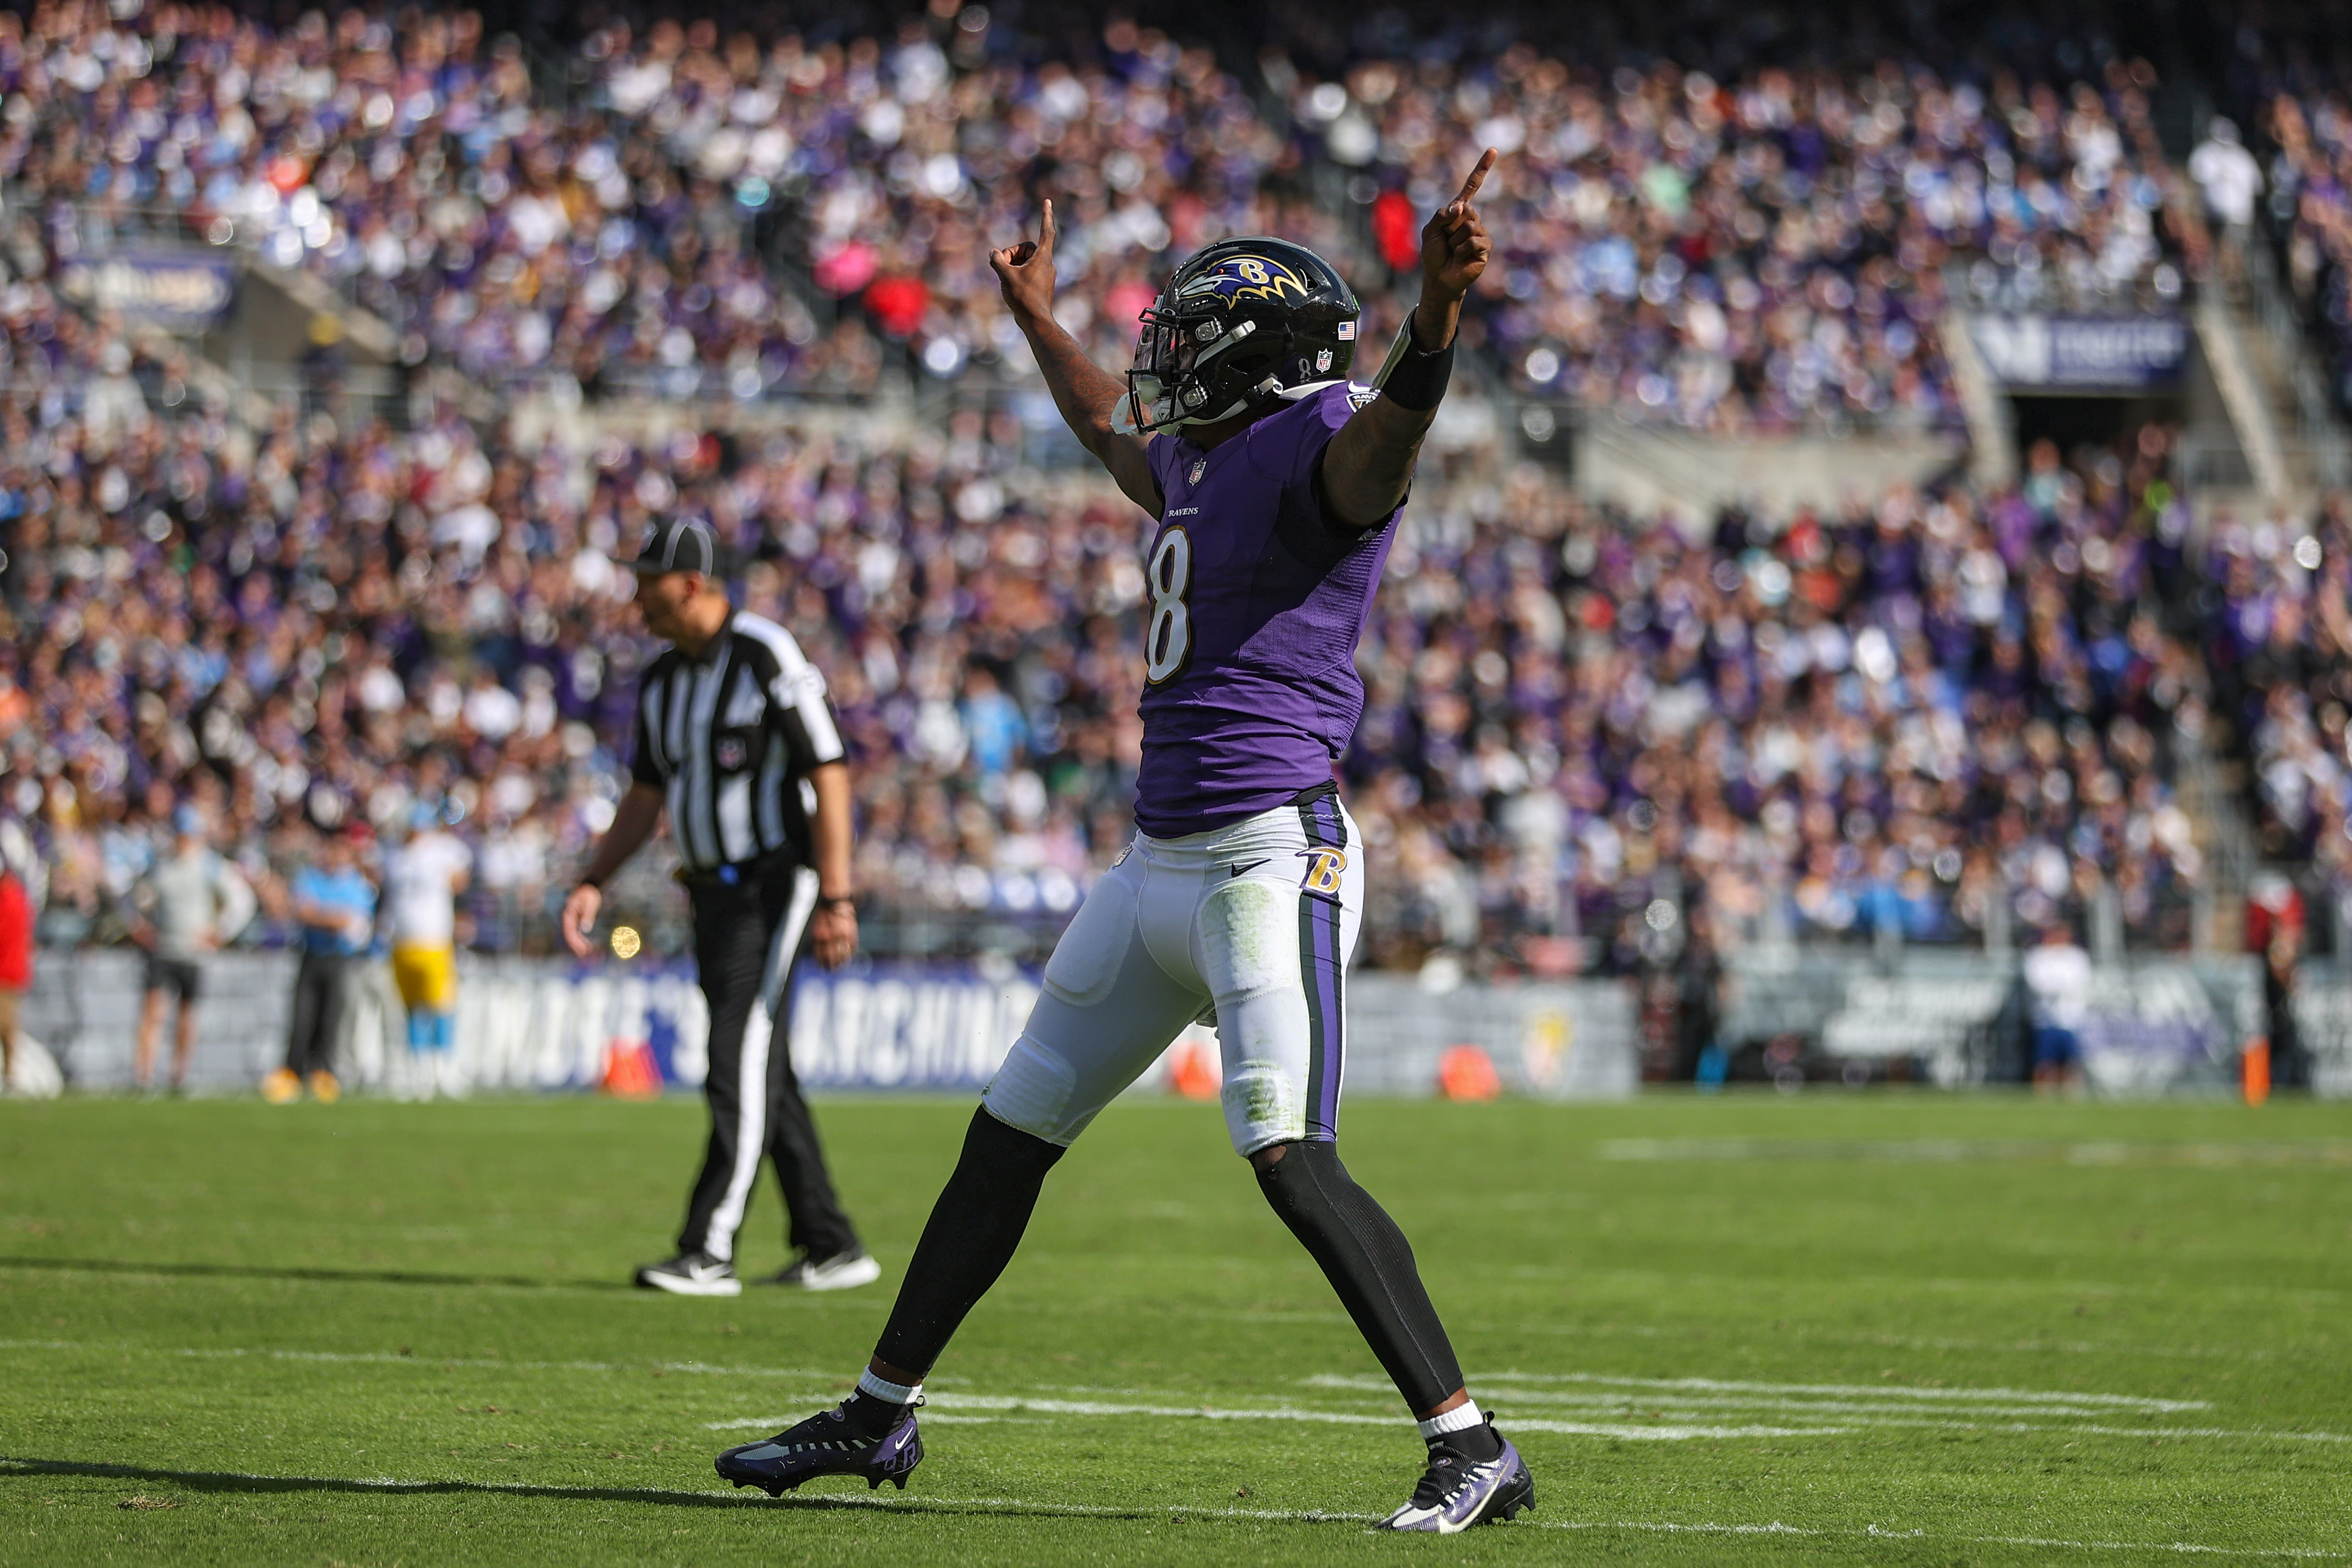 Quarterback Lamar Jackson #8 of the Baltimore Ravens celebrates a touchdown scored by Le'Veon Bell #17 (not pictured) during the second quarter against the Los Angeles Chargers at M&T Bank Stadium on October 17, 2021 in Baltimore, Maryland.